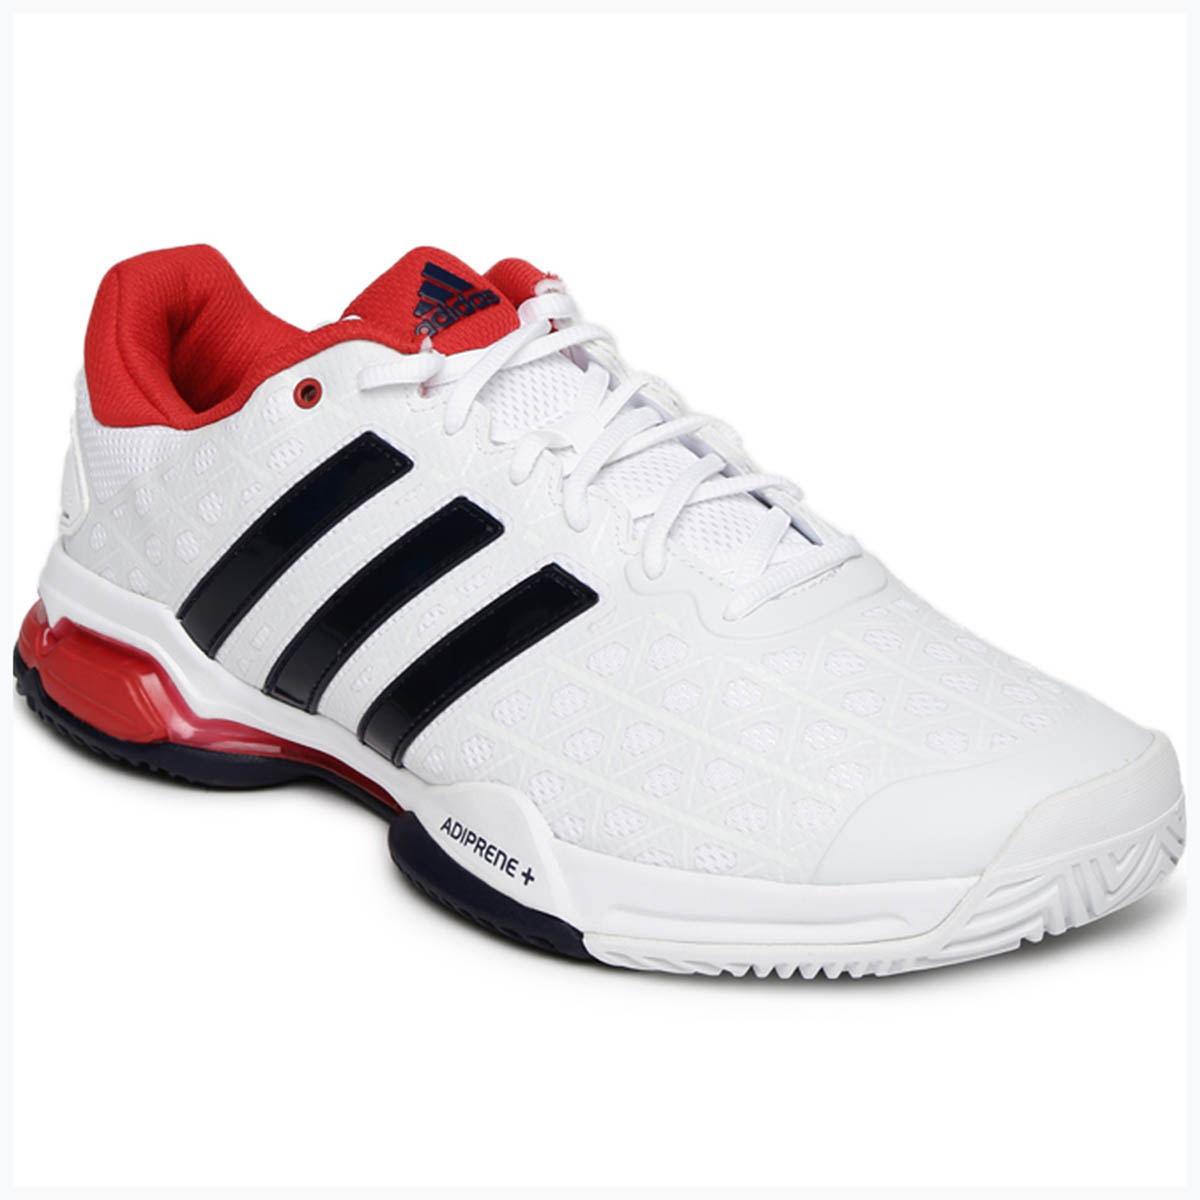 Buy Adidas Barricade Club Low Tennis Shoes (White Navy Red) Online 320061fc2